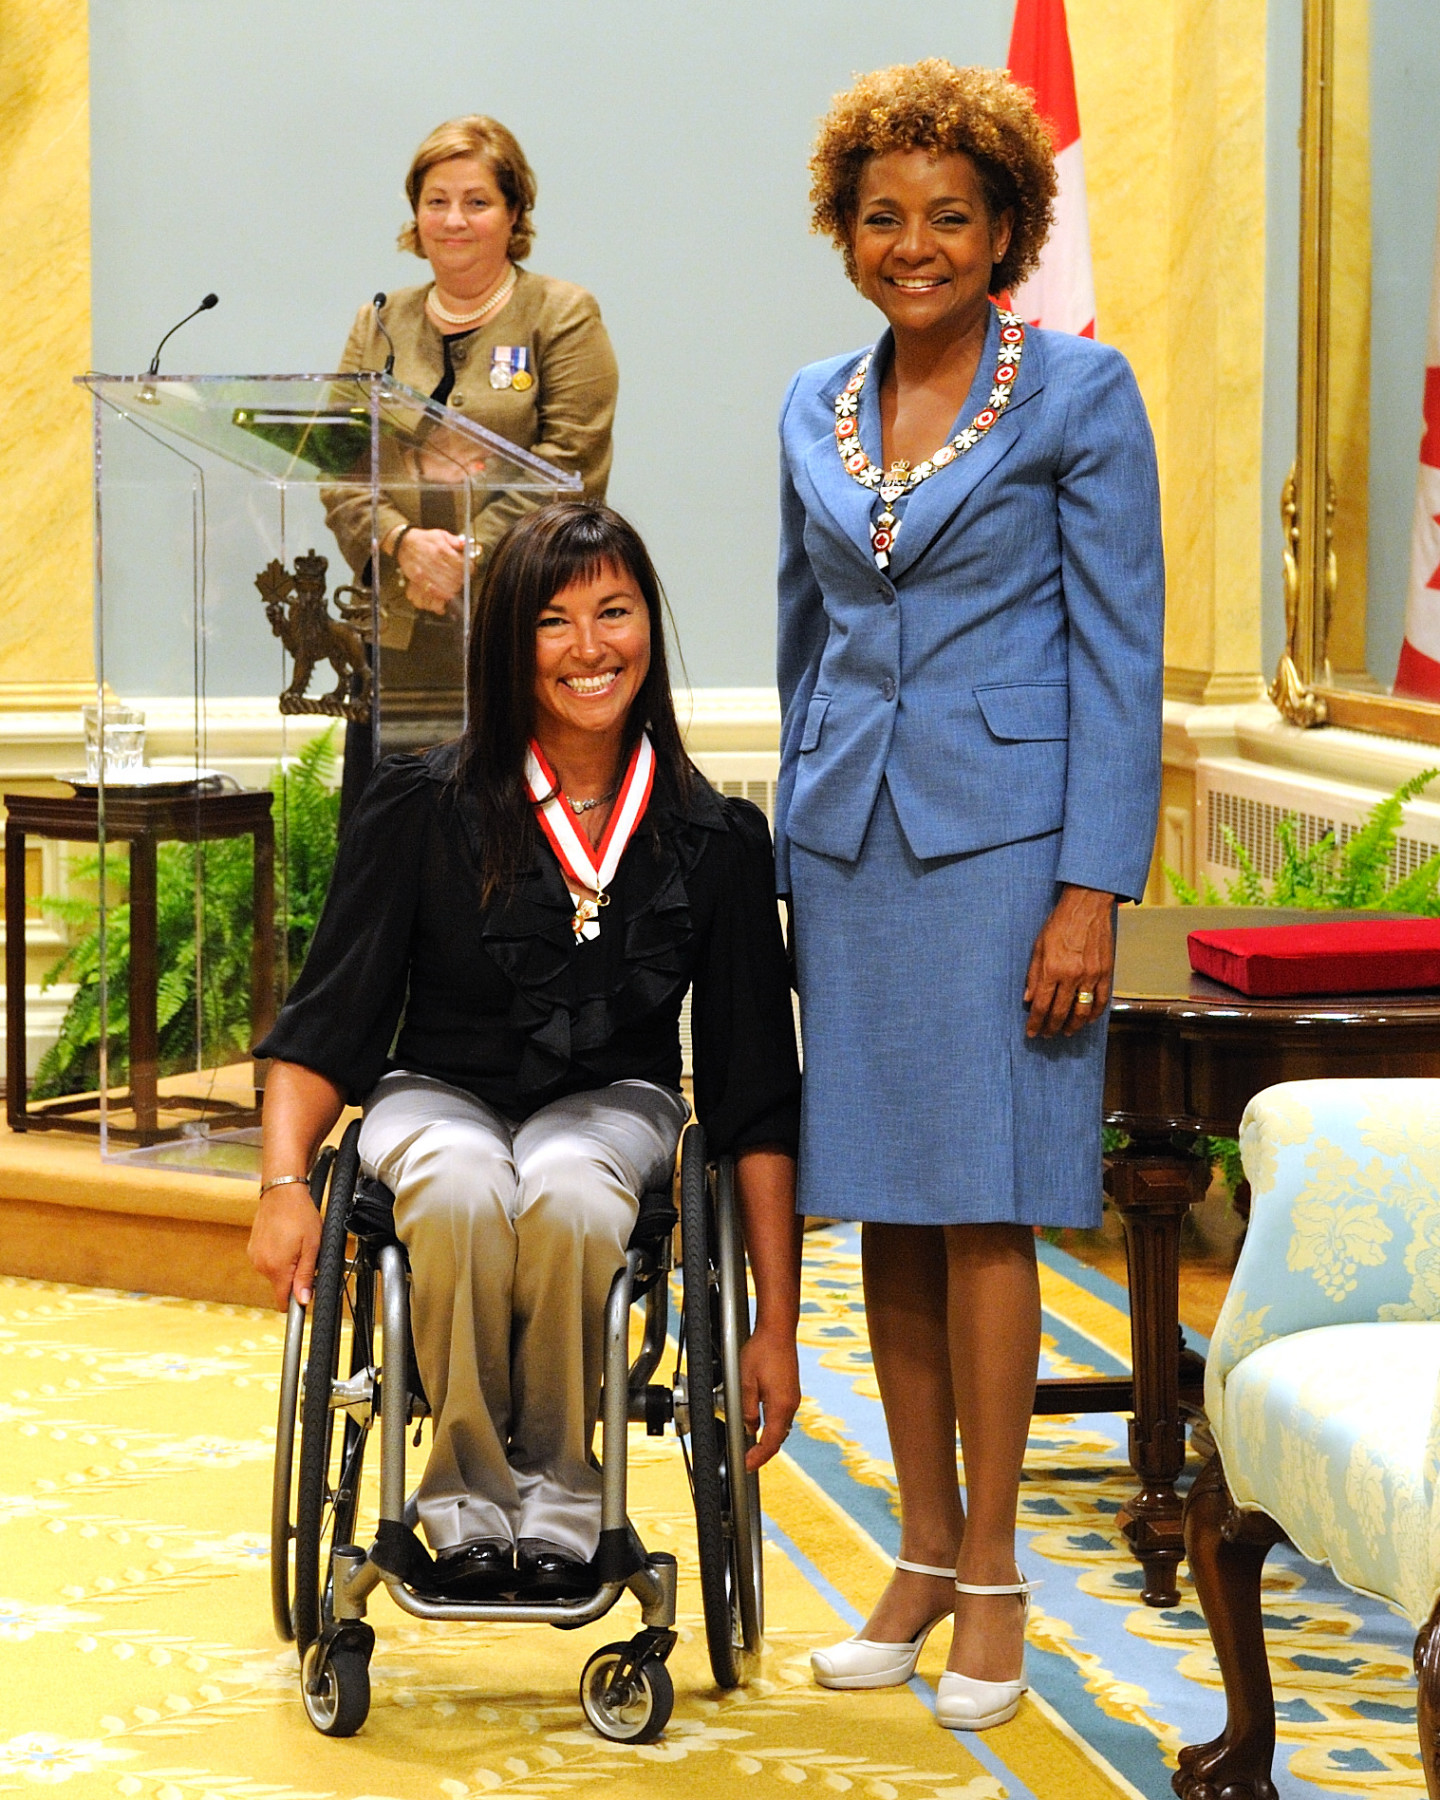 Chantal Petitclerc (Montréal, Quebec) is a model of determination and excellence. At the age of 13, an accident left her with a damaged spinal column and at the age of 18, she took part in her first wheelchair race. Although she finished last, she fell in love with racing. Since then, she has won the most medals in Canadian track and field history, with a total of 21 medals from five Paralympic Games. She also holds four world records and five Paralympic records. A spokesperson for Défi sportif and a sought-after guest speaker, she motivates people to conquer adversity and contributes to the development of handisports. She is a source of inspiration all around the world. Known for her achievements and as a role model for others, she has won the Laureus World Sports Award and was the first female Paralympic athlete to win the Lou Marsh Award as Canada's Athlete of the Year.